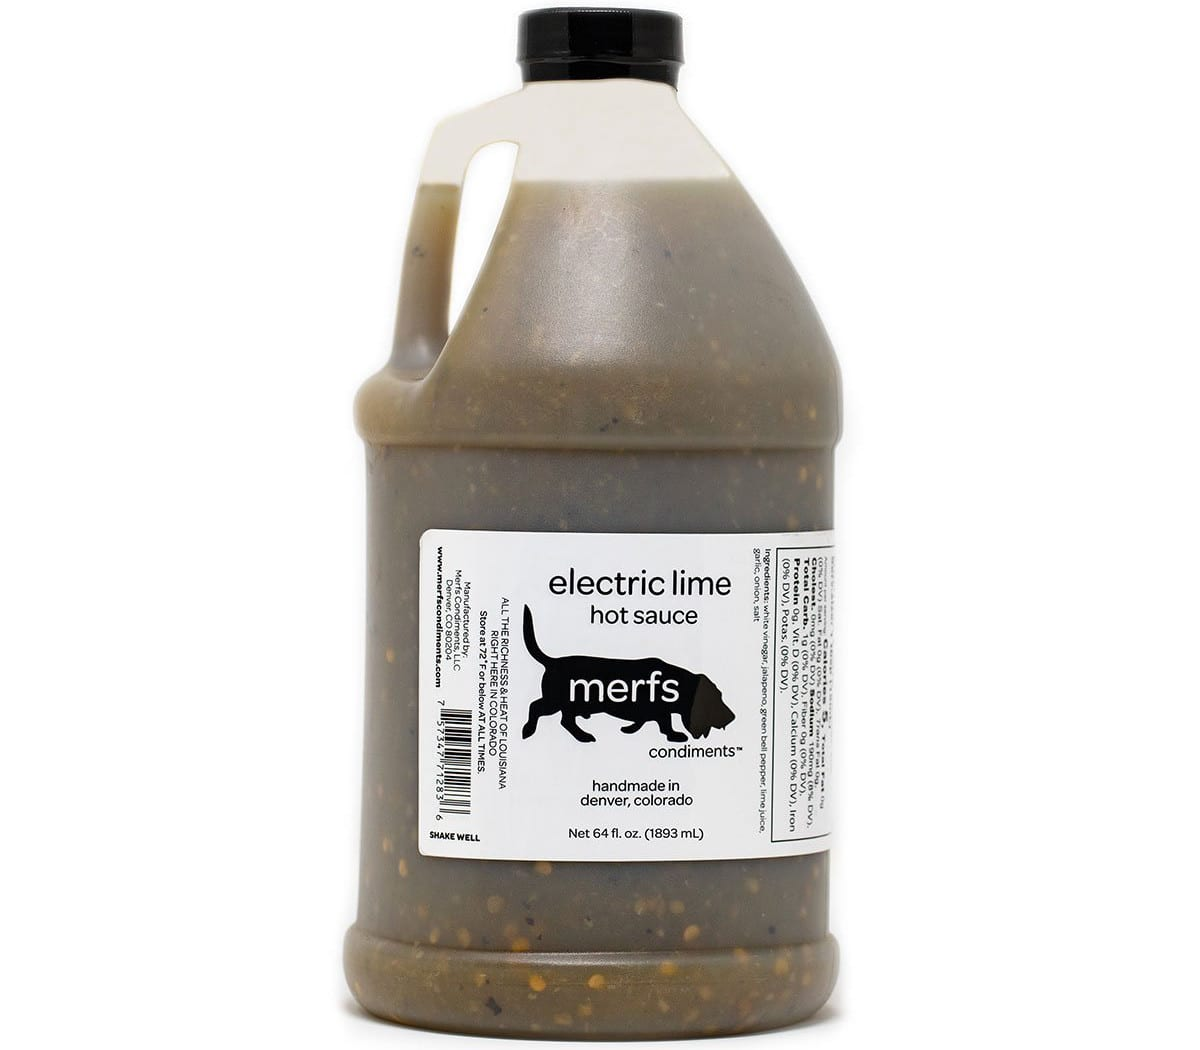 Merfs Condiments Electric Lime Hot Sauce Half Gallon